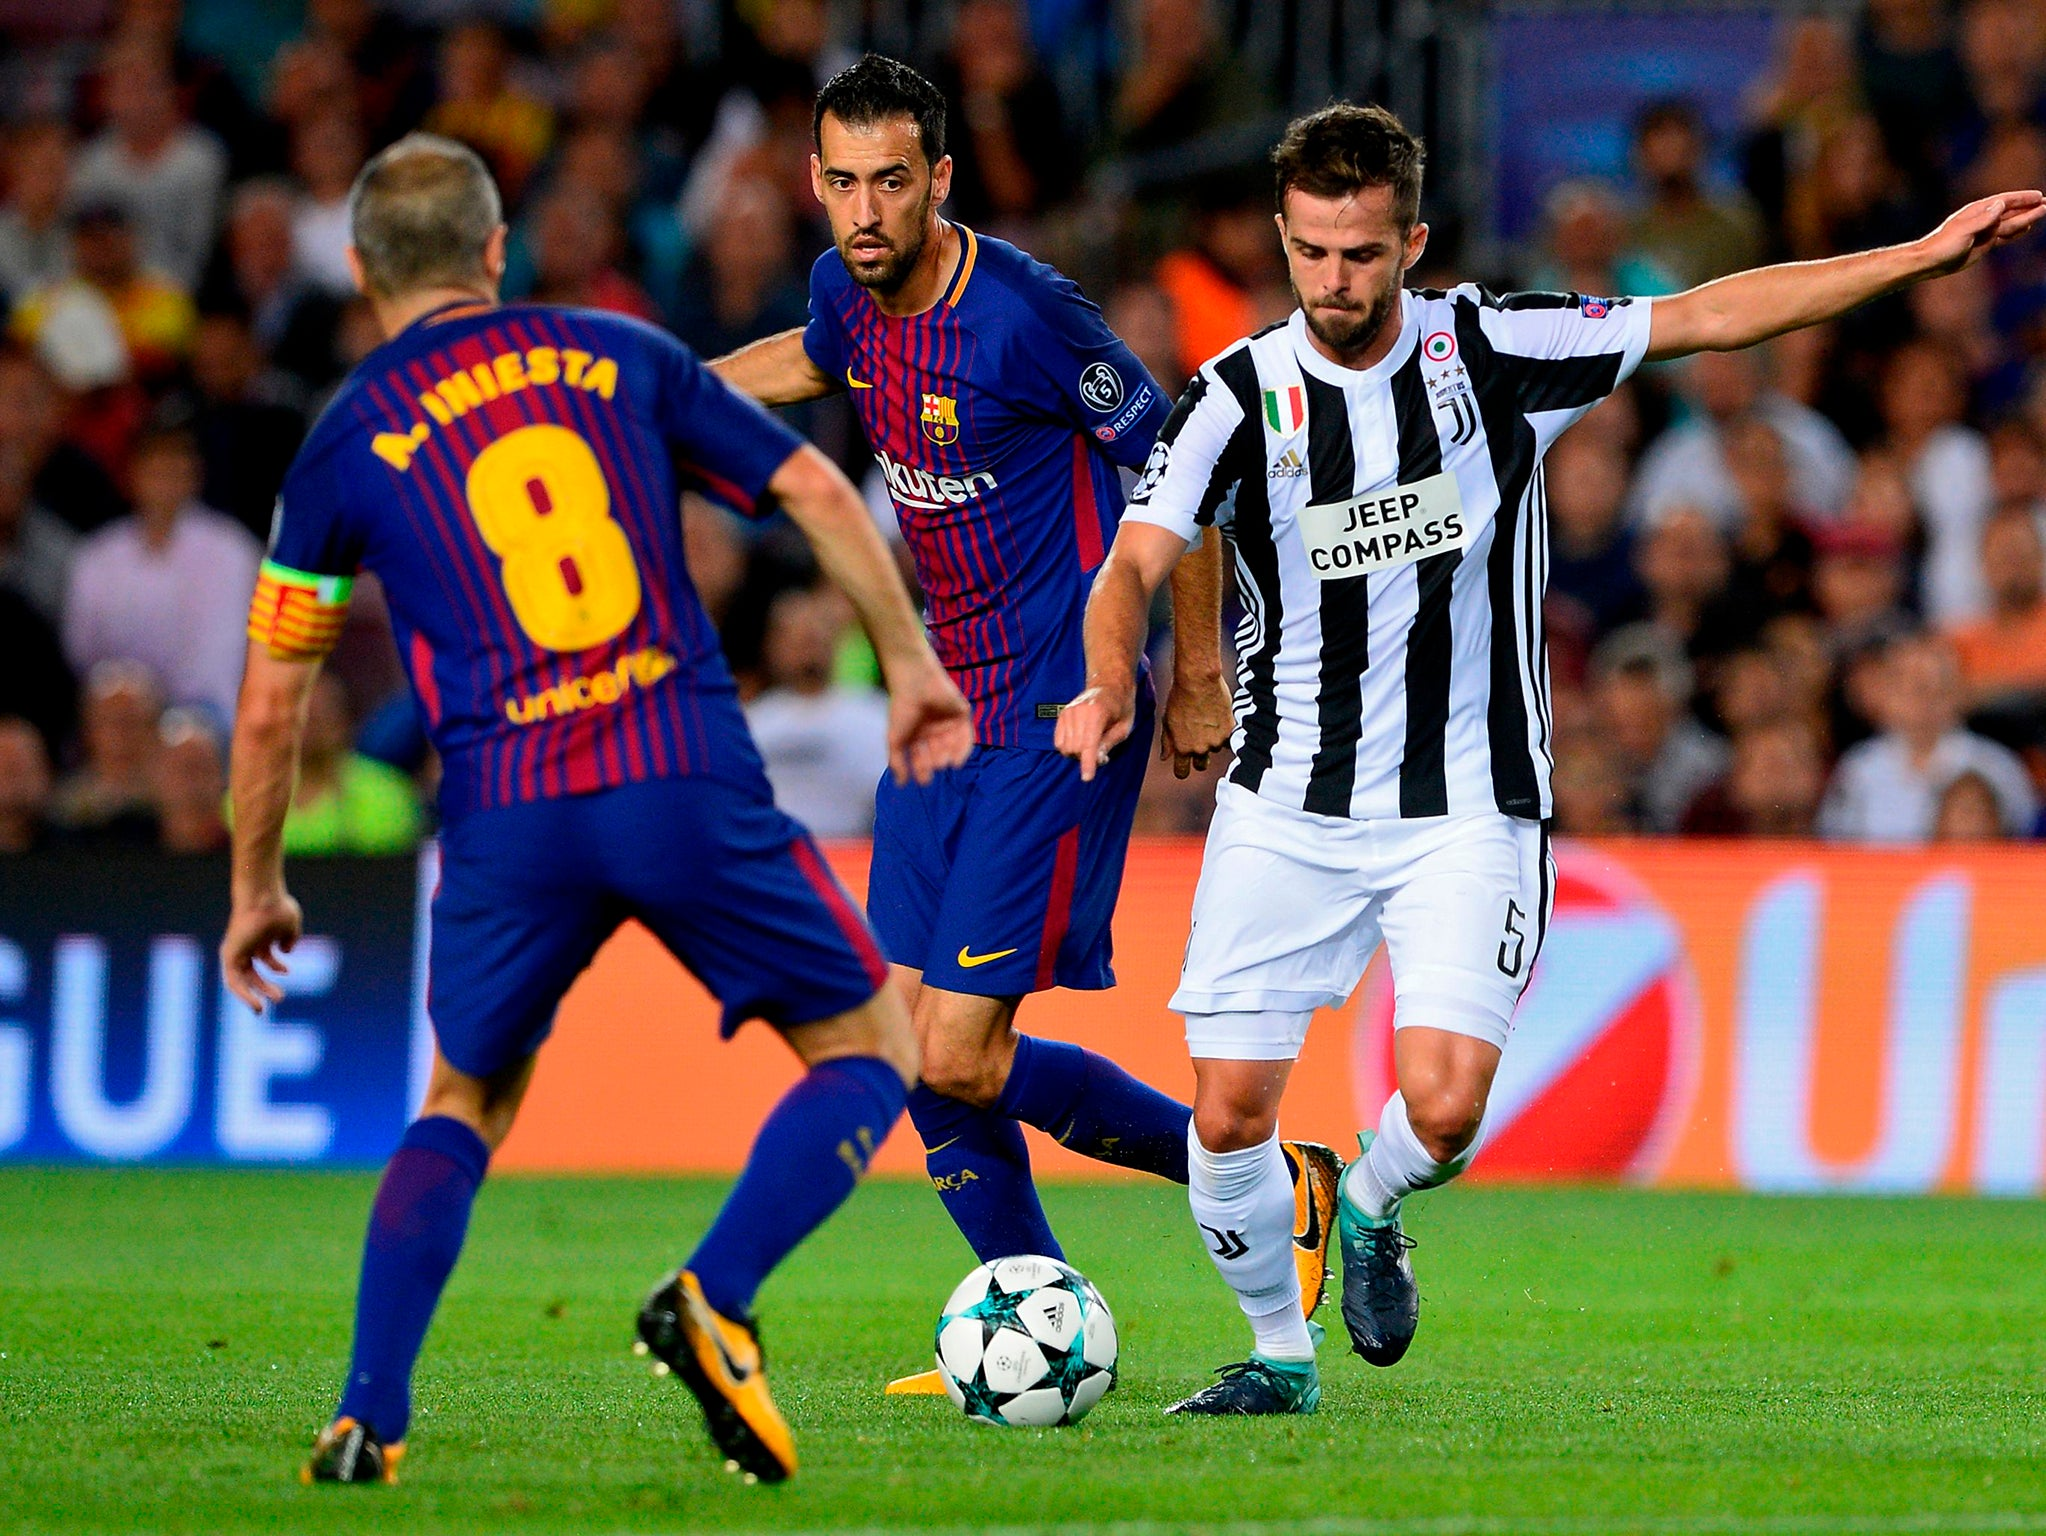 Barcelona vs Juventus, Champions League - as it happened ...